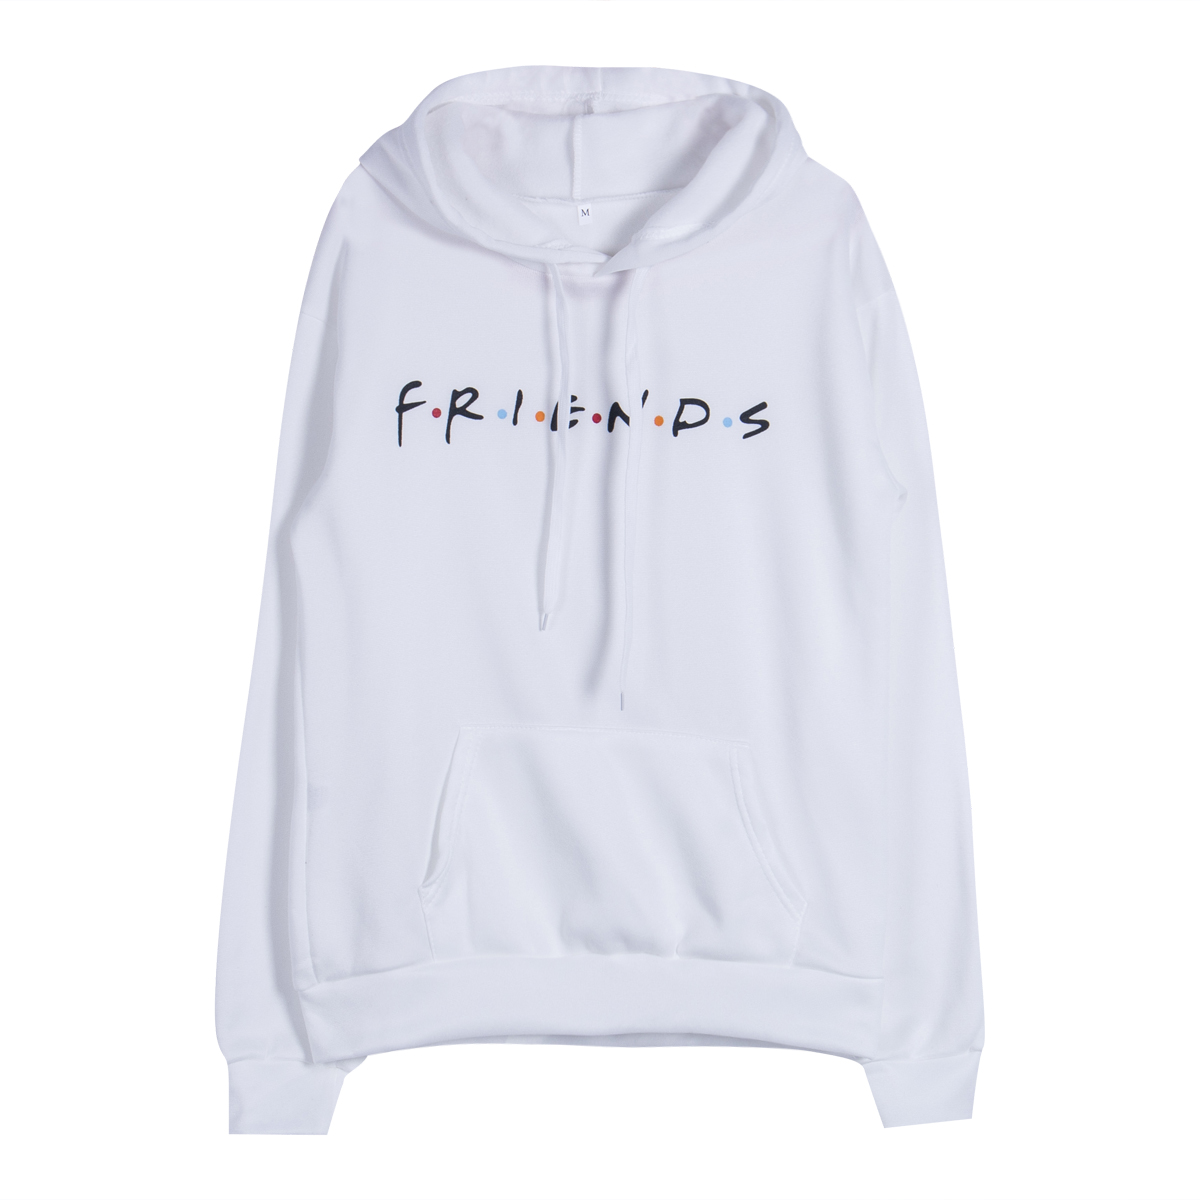 Kpop Adult Unisex Mens Letter Friends Printing Chic Simple Hoody Jumper Hooded Sweatershirt Pullovers Autumn Winter Casual